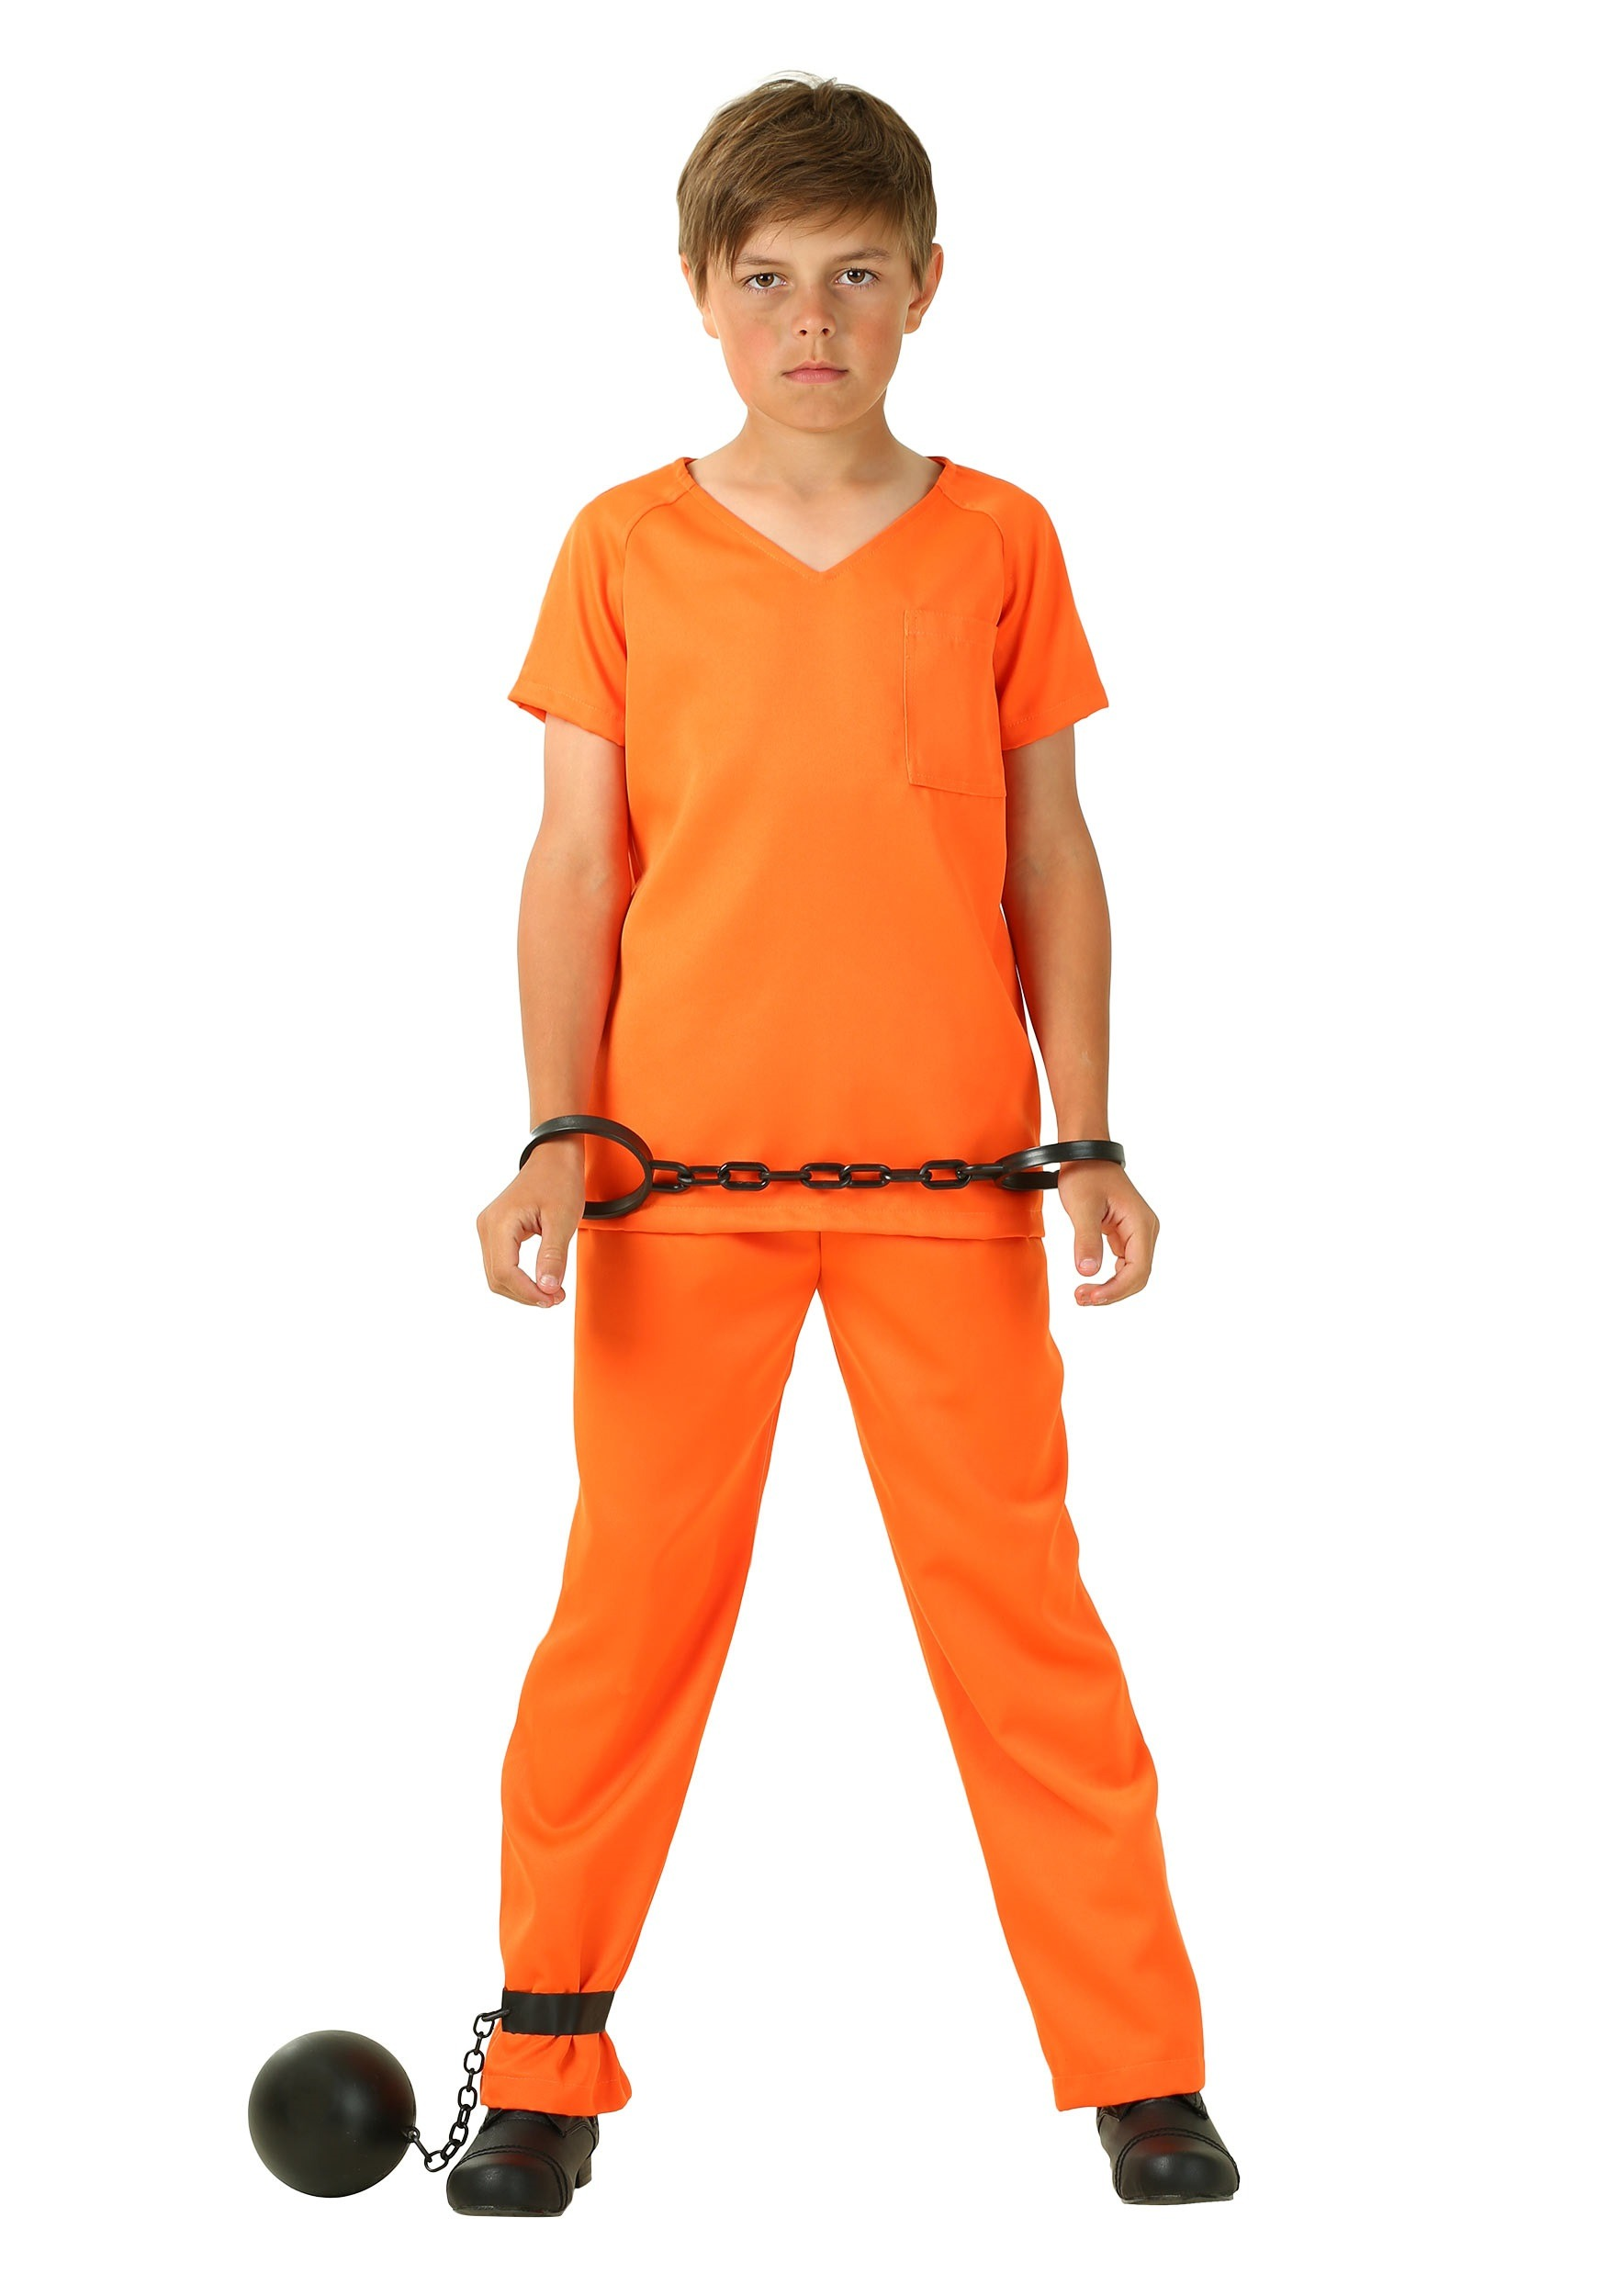 sc 1 st  Halloween Costumes & Boyu0027s Orange Prisoner Costume